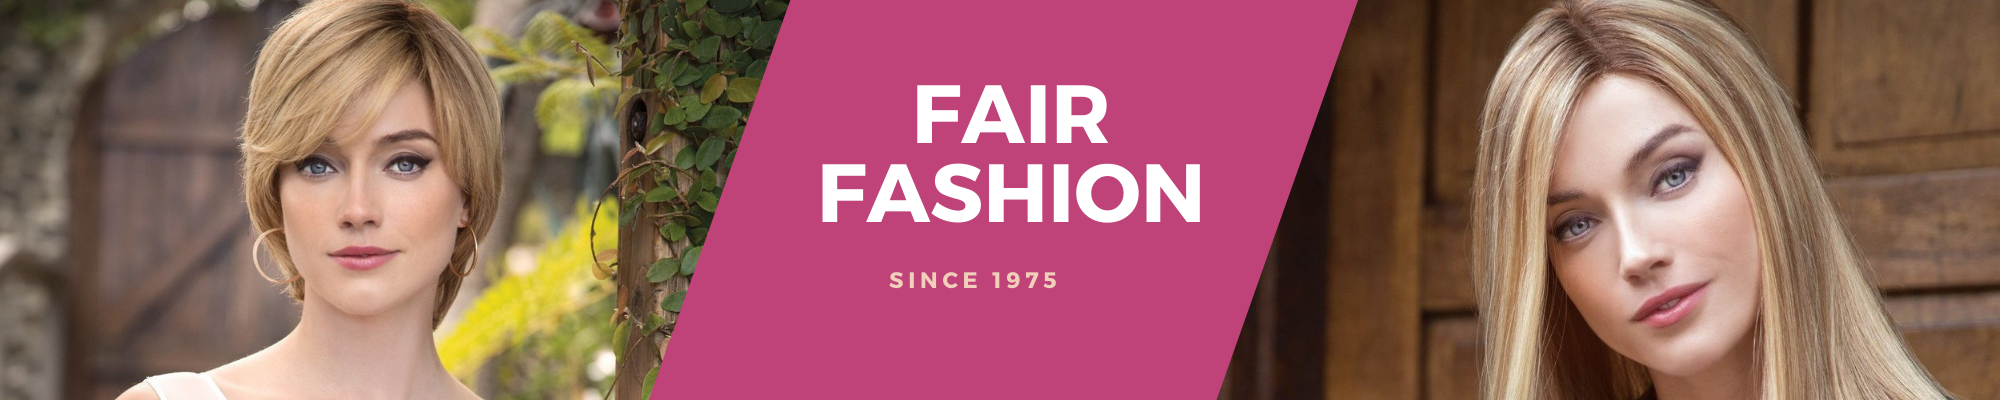 Fair Fashion has been offering, since 1975